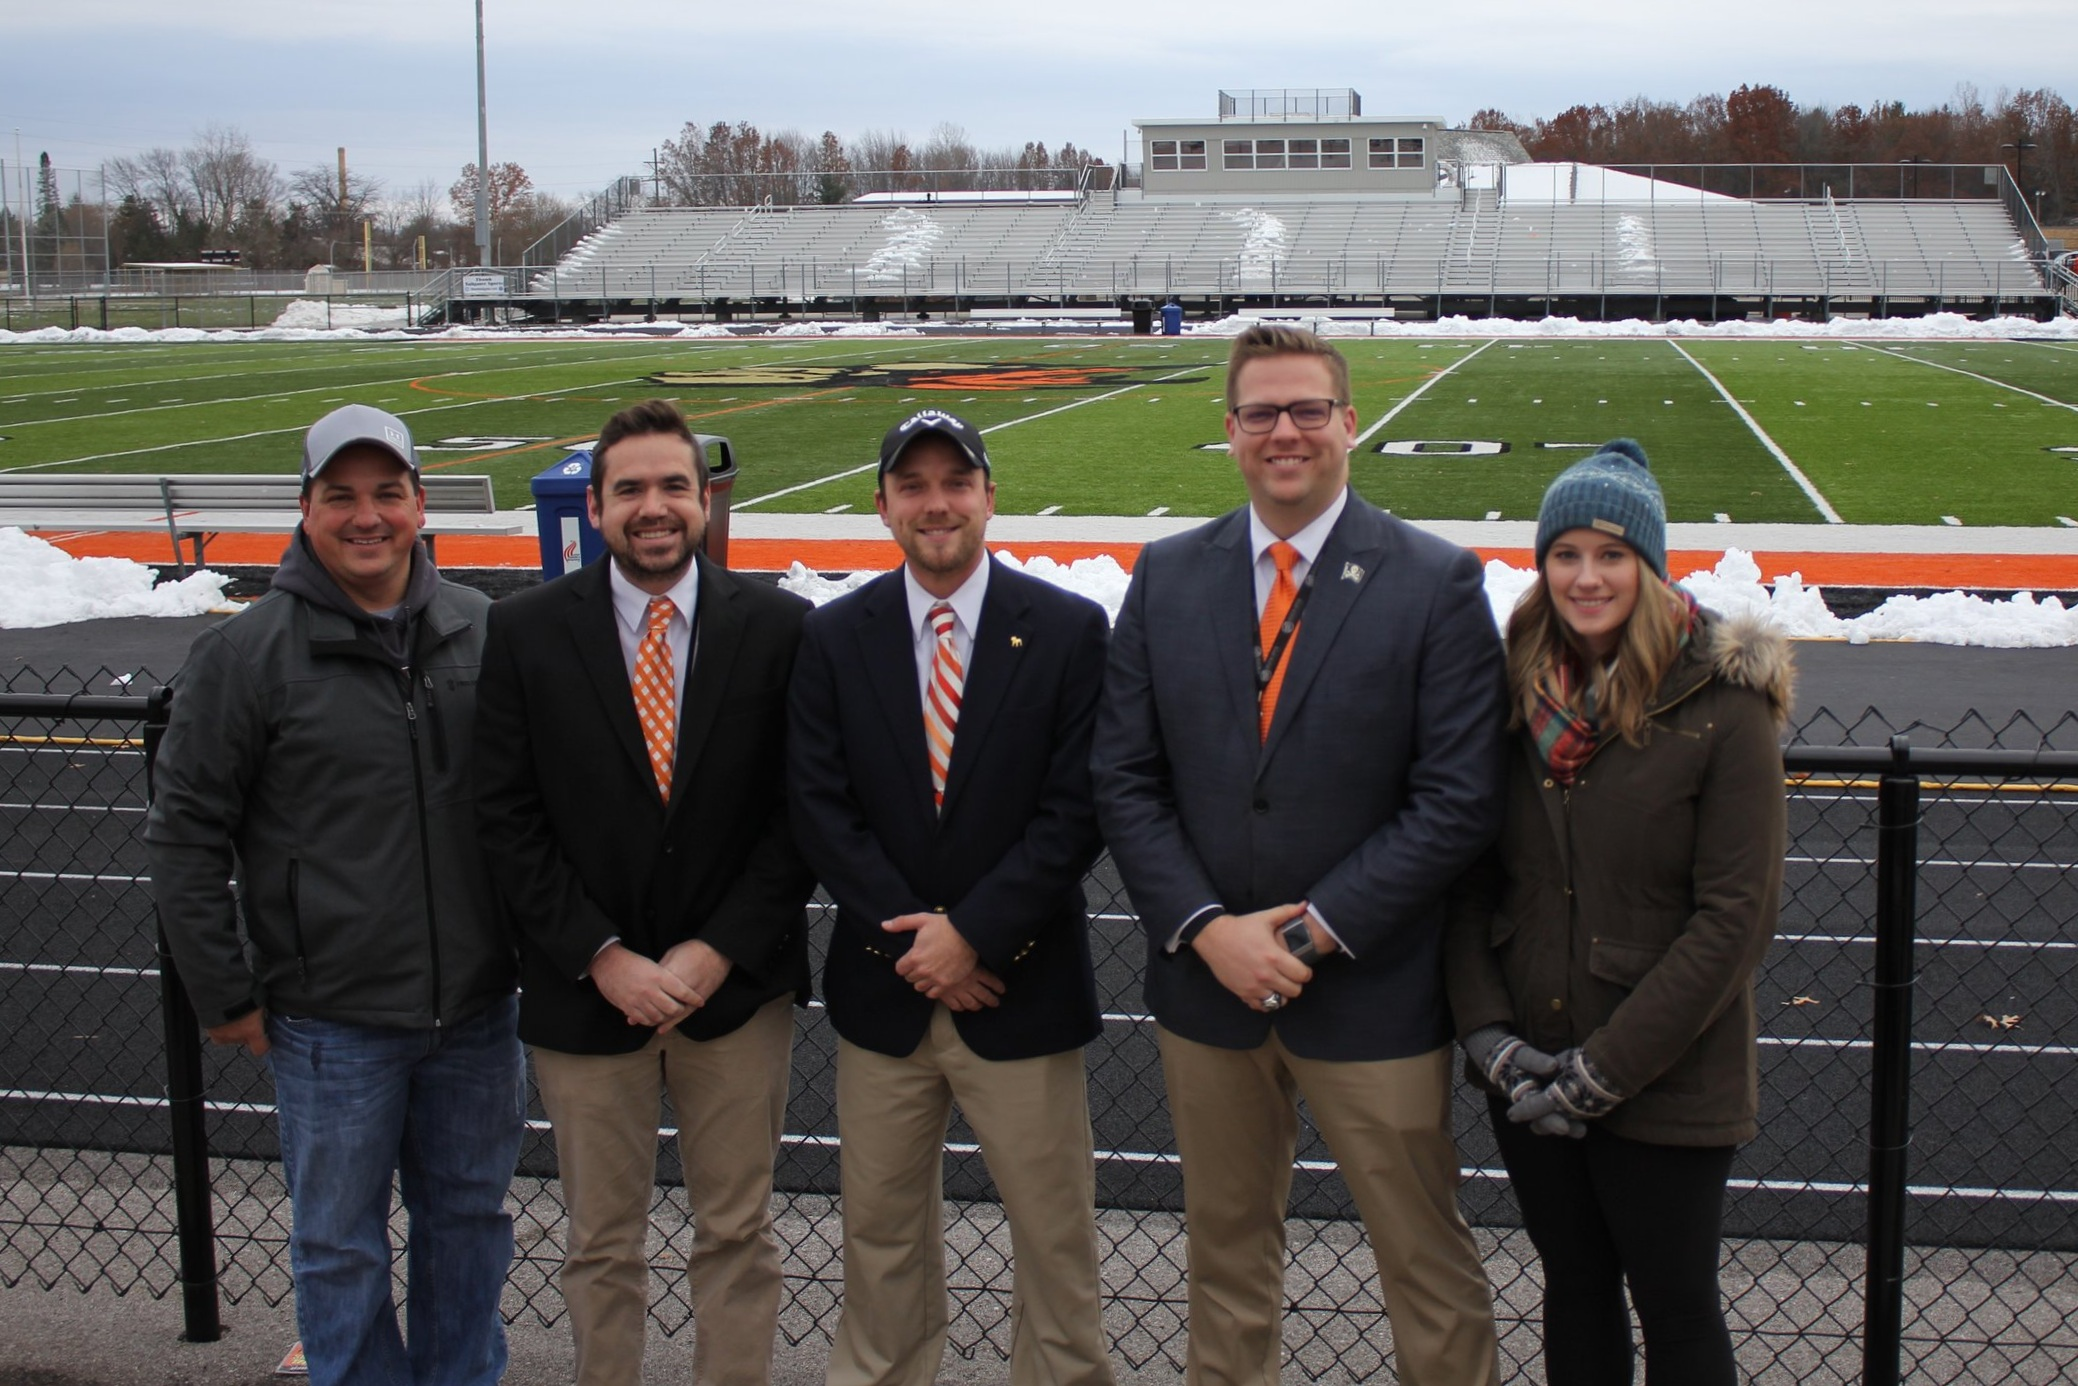 WLEW Sports Network Broadcast Team